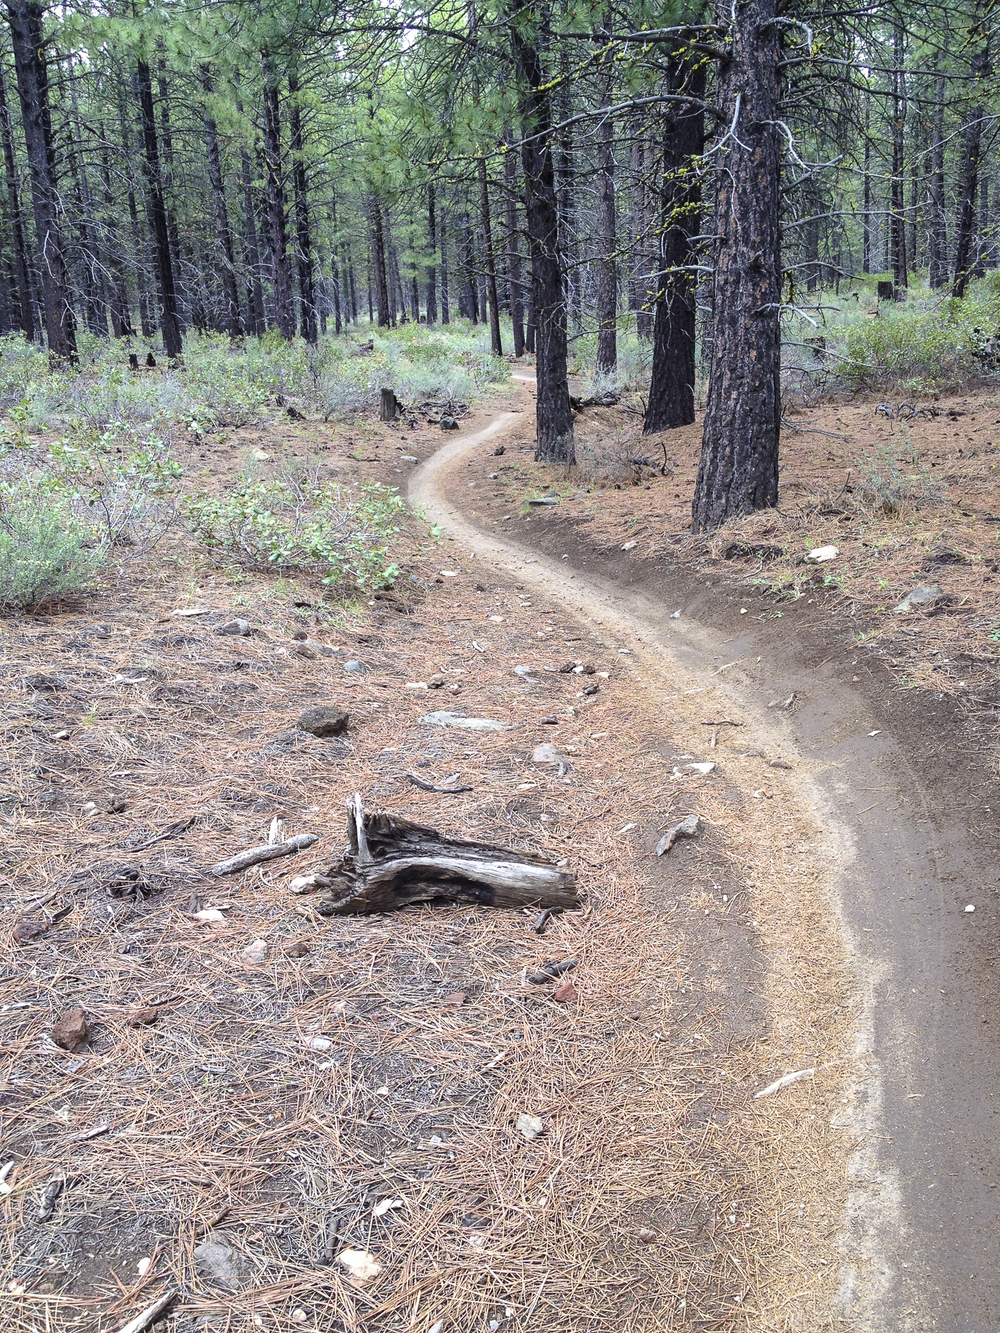 Some of the mountain bike trails I was riding near Bend Oregon.